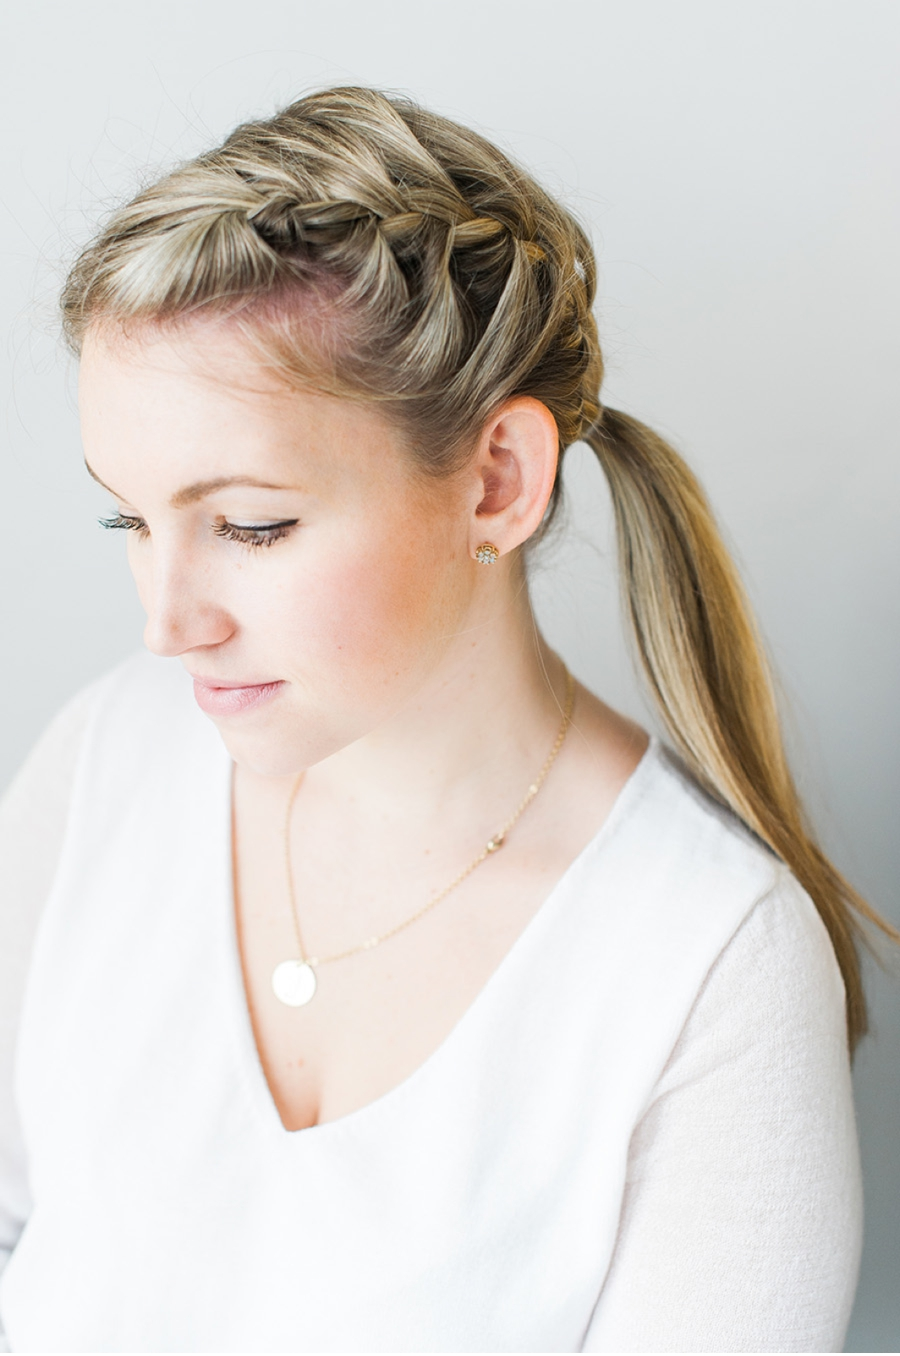  STEP 3 Pull all of your hair, including thebraid, into a side pony tail. Tie off with a clear elastic and remove the elastic on thebraid.